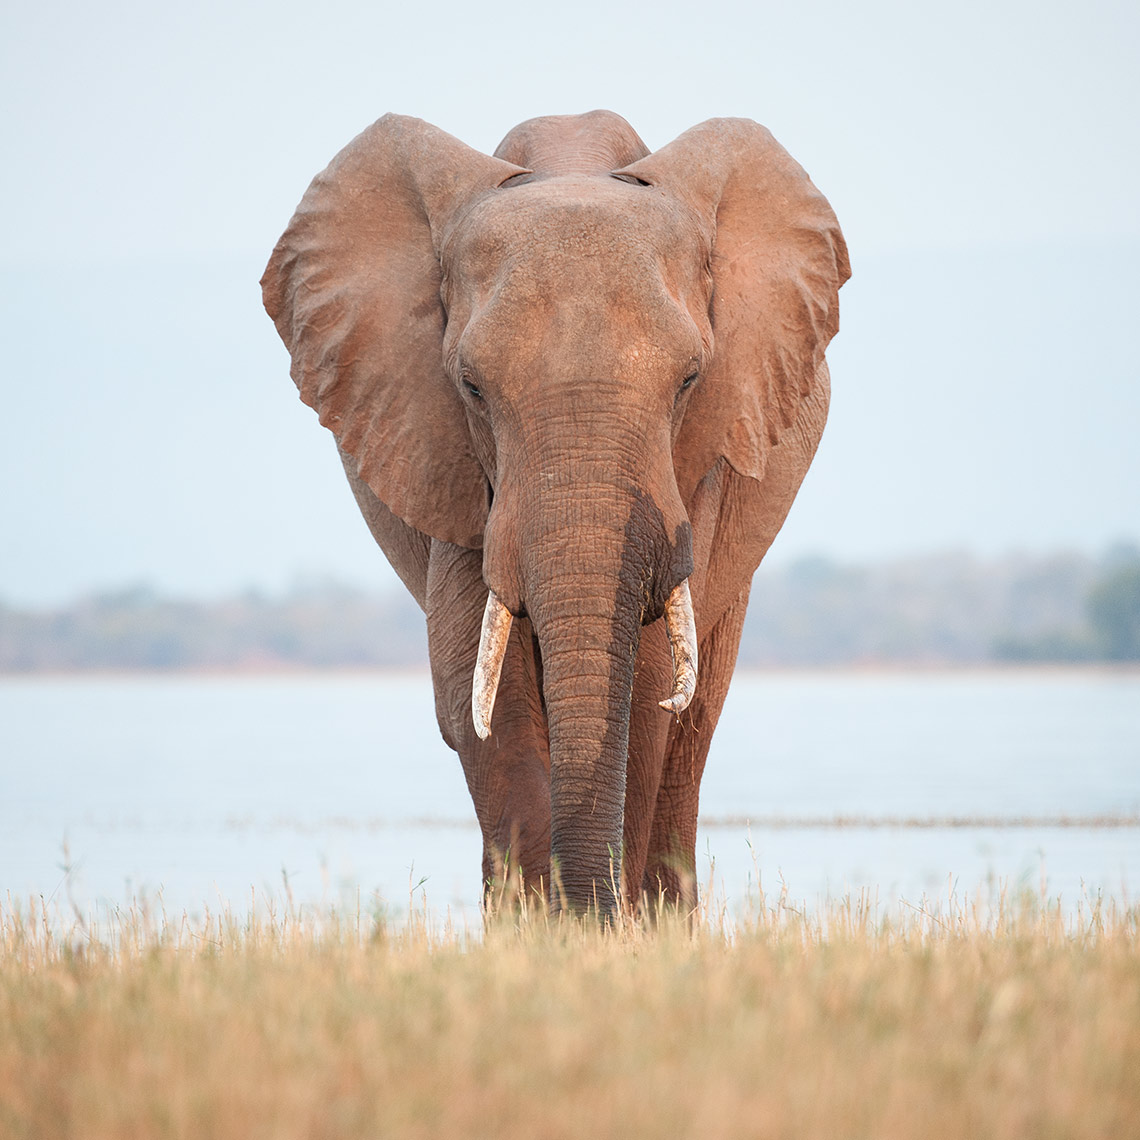 Elephant in Lake Kariba, Zimbabwe